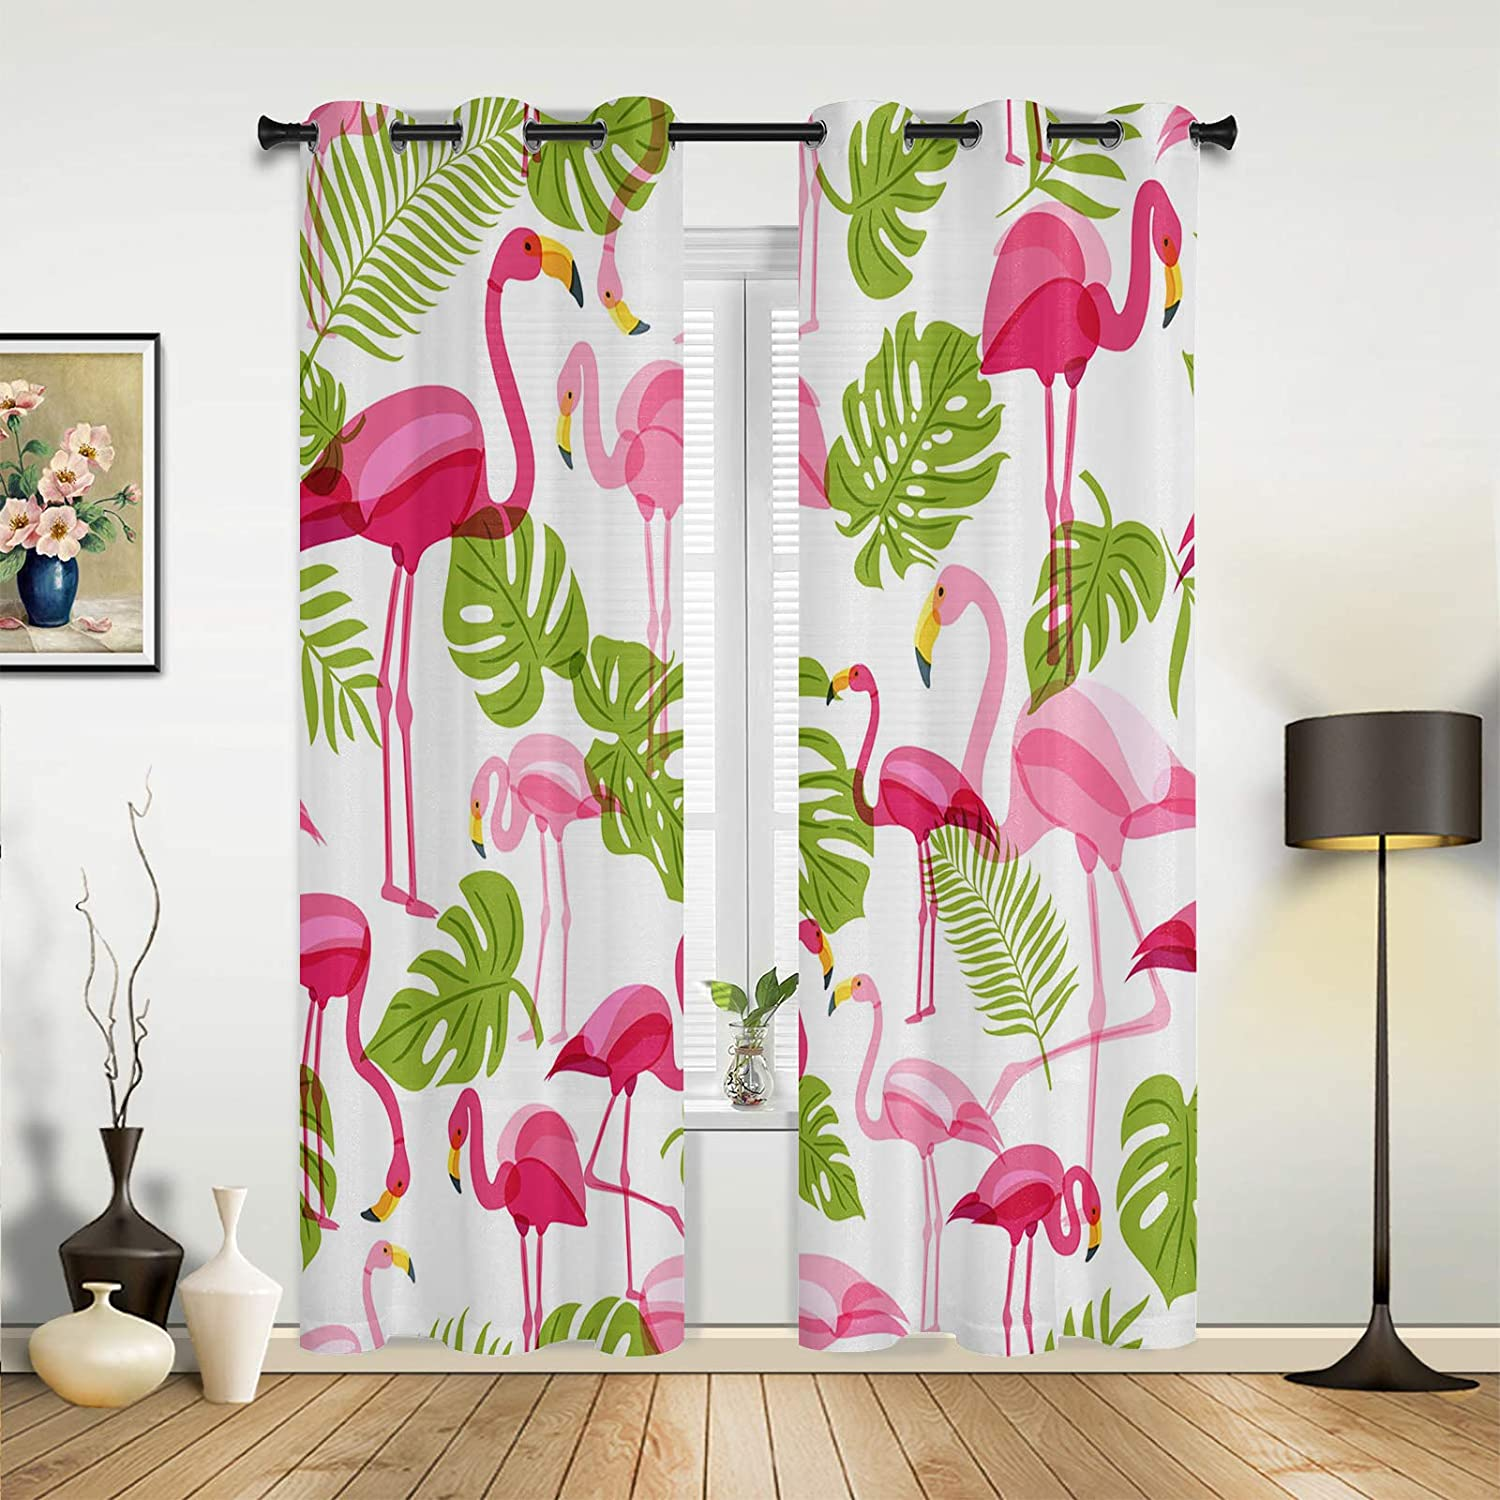 Beauty Decor Window mart Sheer Curtains Fresno Mall Summe for Bedroom Living Room